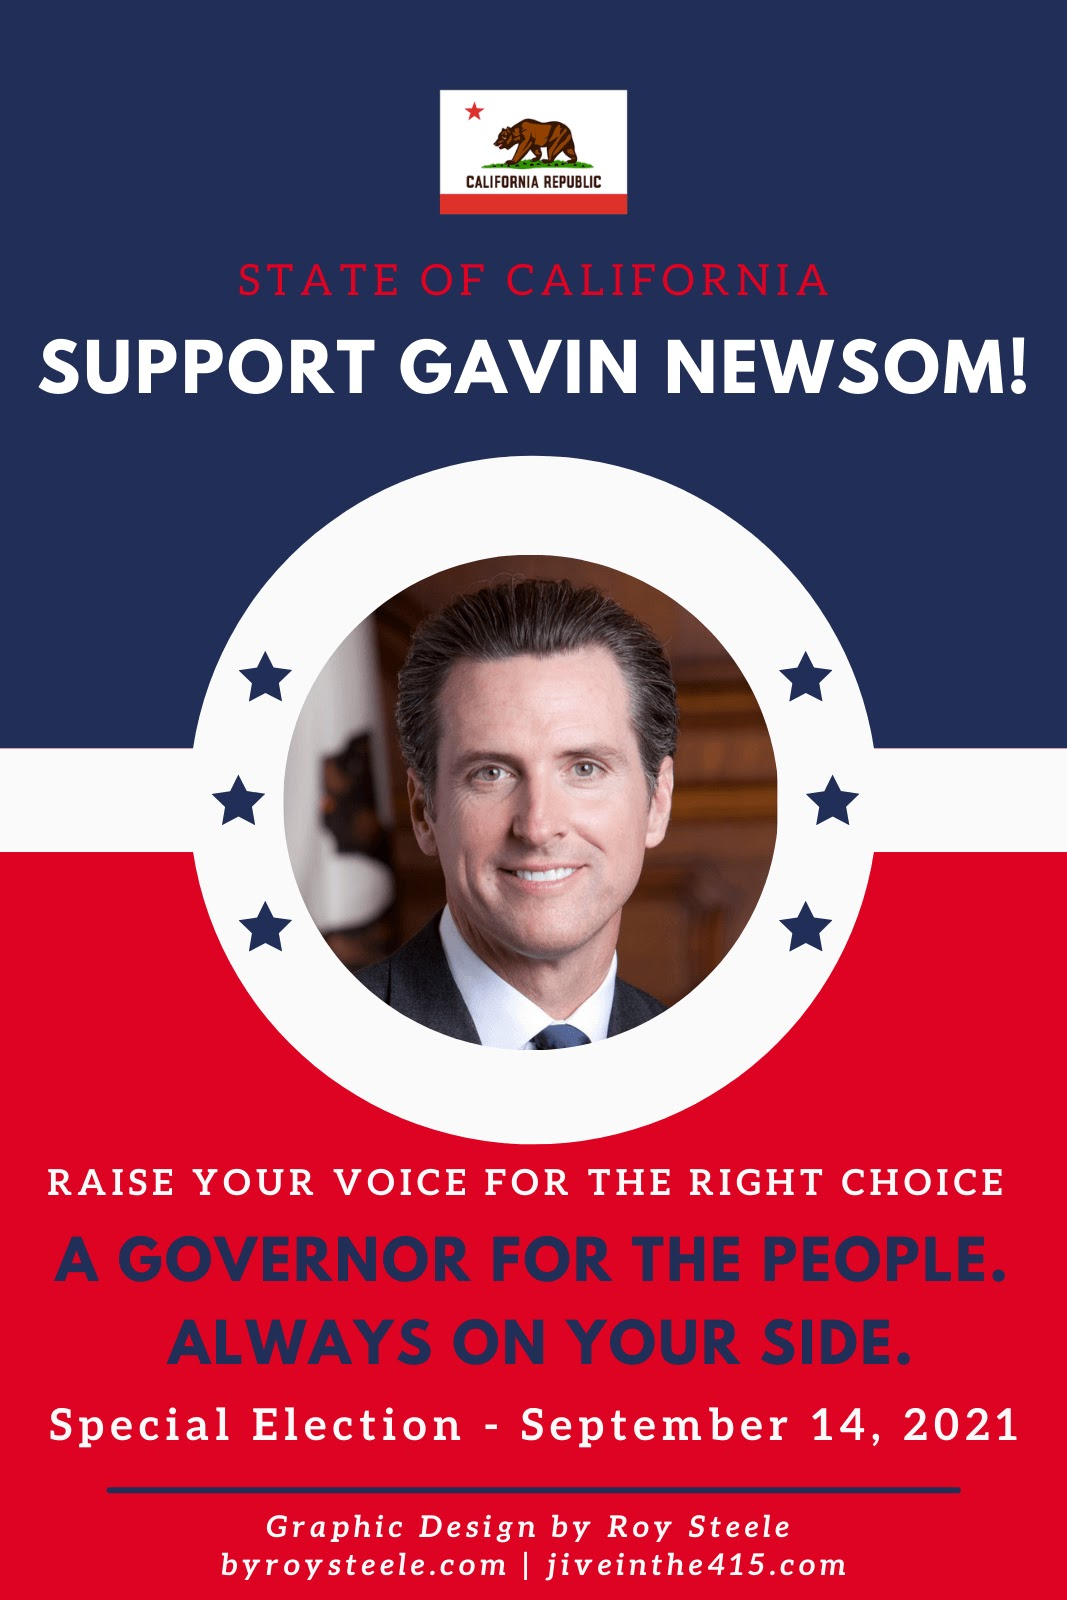 A photograph of Governor Gavin Newsom on red white and blue background that implores voters to support Gavin Newsom in the 09/14/2021 recall election.